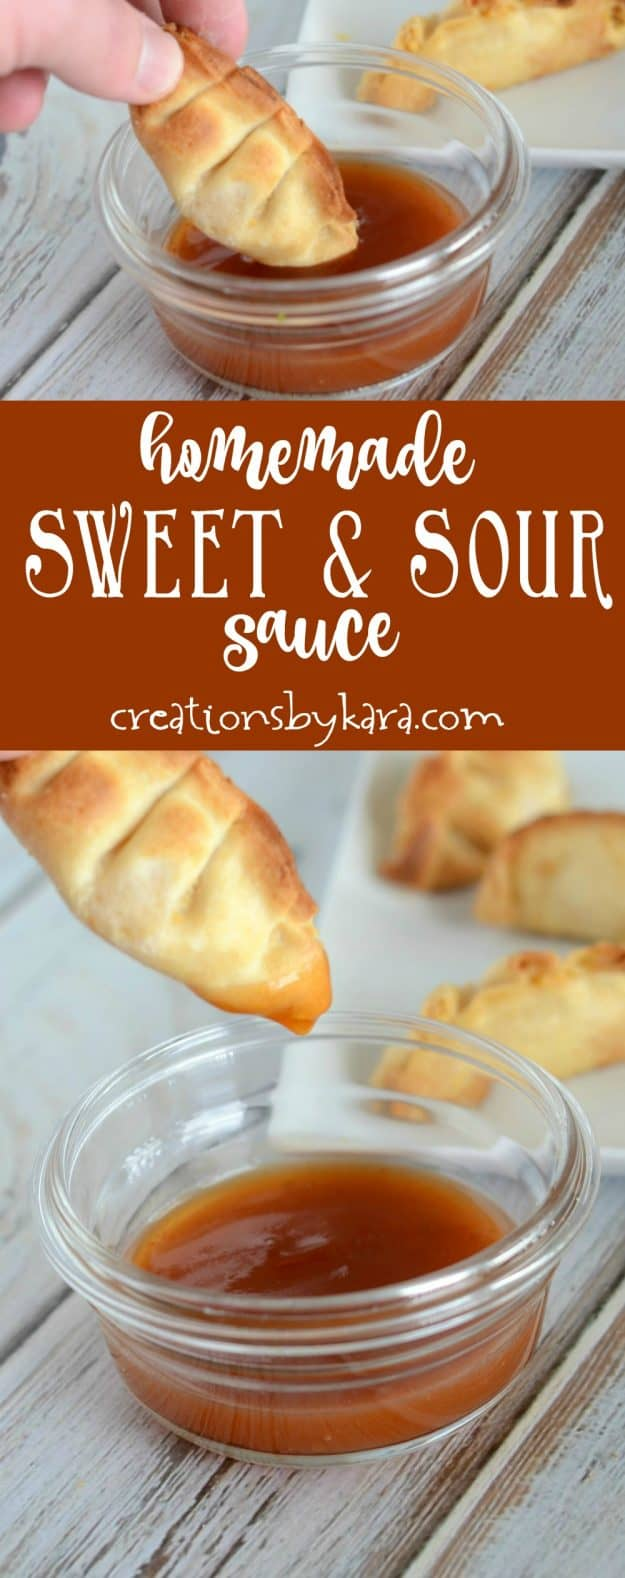 Homemade sweet and sour sauce - perfect for dipping chicken or wontons. Or use with meatballs. A great tangy sauce recipe.